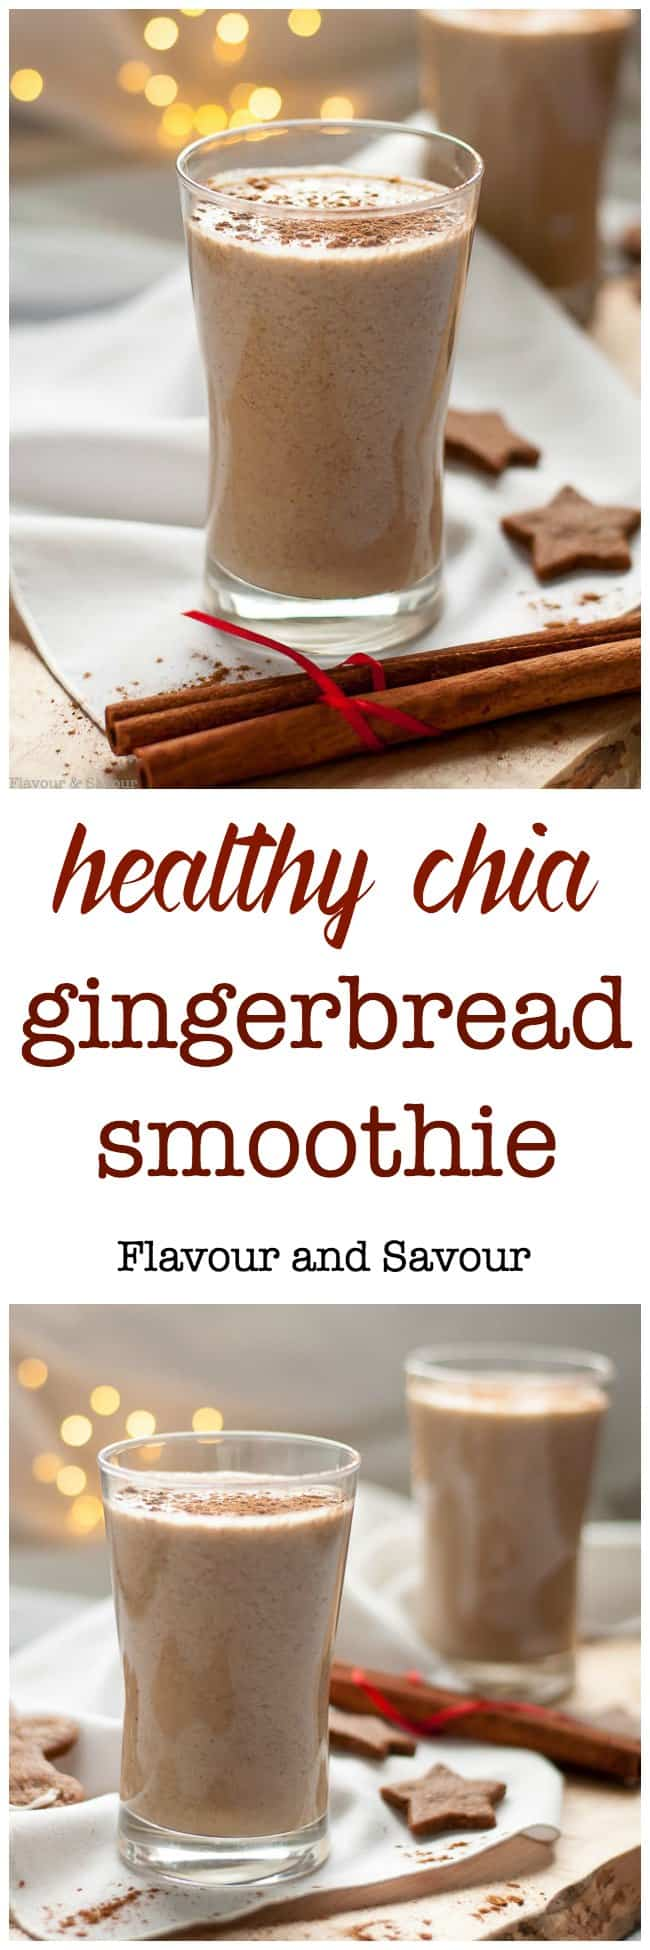 Start your fall and winter mornings on a healthy note with this Healthy Chia Gingerbread Smoothie. This energizing, protein-rich smoothie is lightly spiced with the flavours of gingerbread: cinnamon, cloves, cardamom and ginger. It's naturally sweetened with banana, dates and molasses.